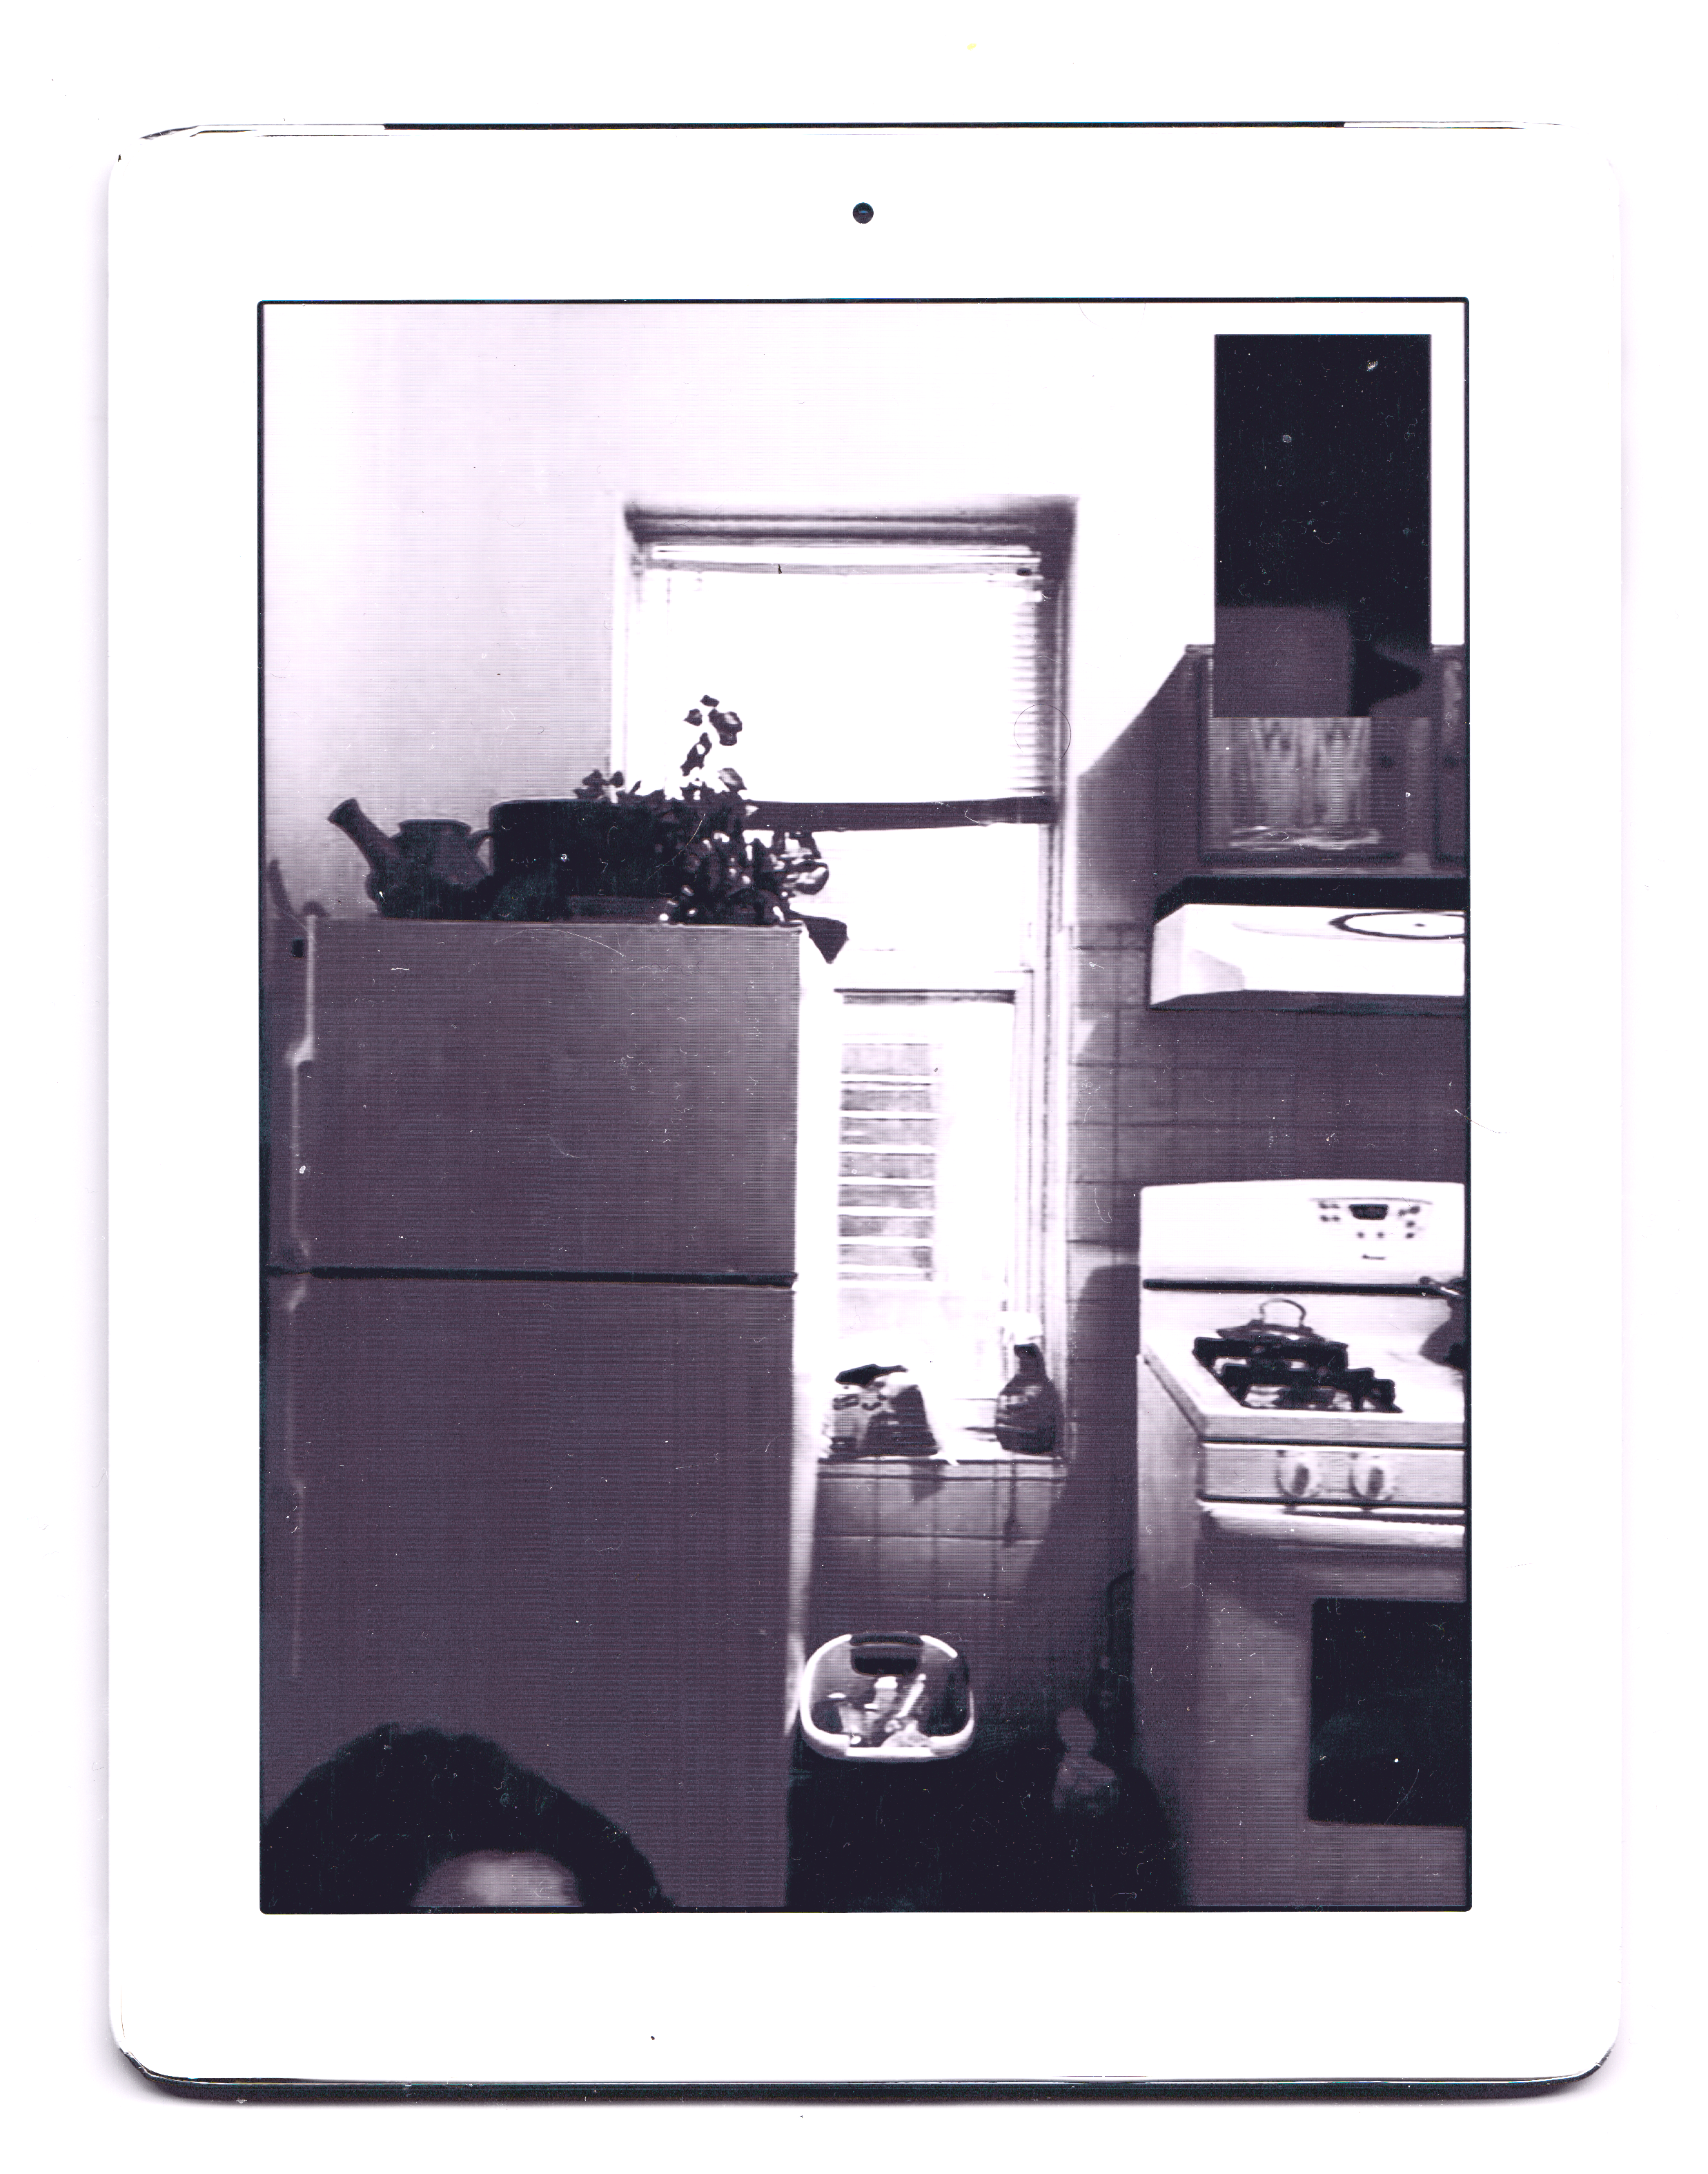 Kitchen_02 copy copy.png